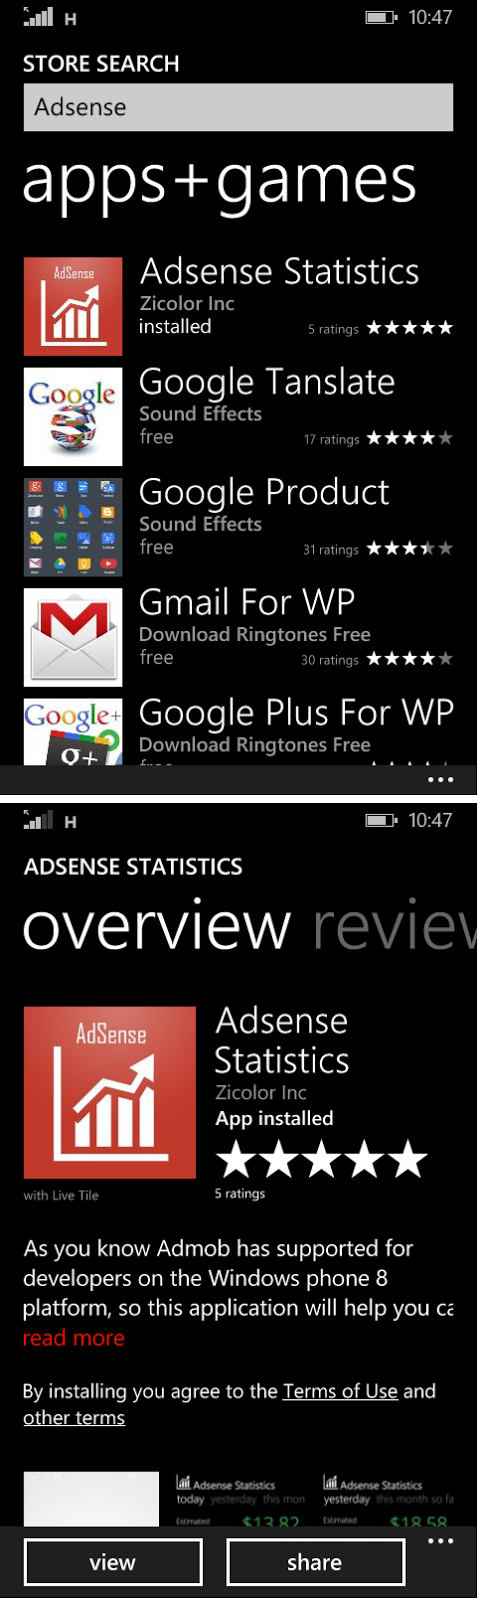 Adsense Statistics, Setting, tools, upgrade, windows, mobile phone, mobile phone inside, windows inside, directly, setting windows phone, windows mobile phones, tools windows, tools mobile phone, upgrade mobile phone, setting and upgrade, upgrade inside, upgrade directly